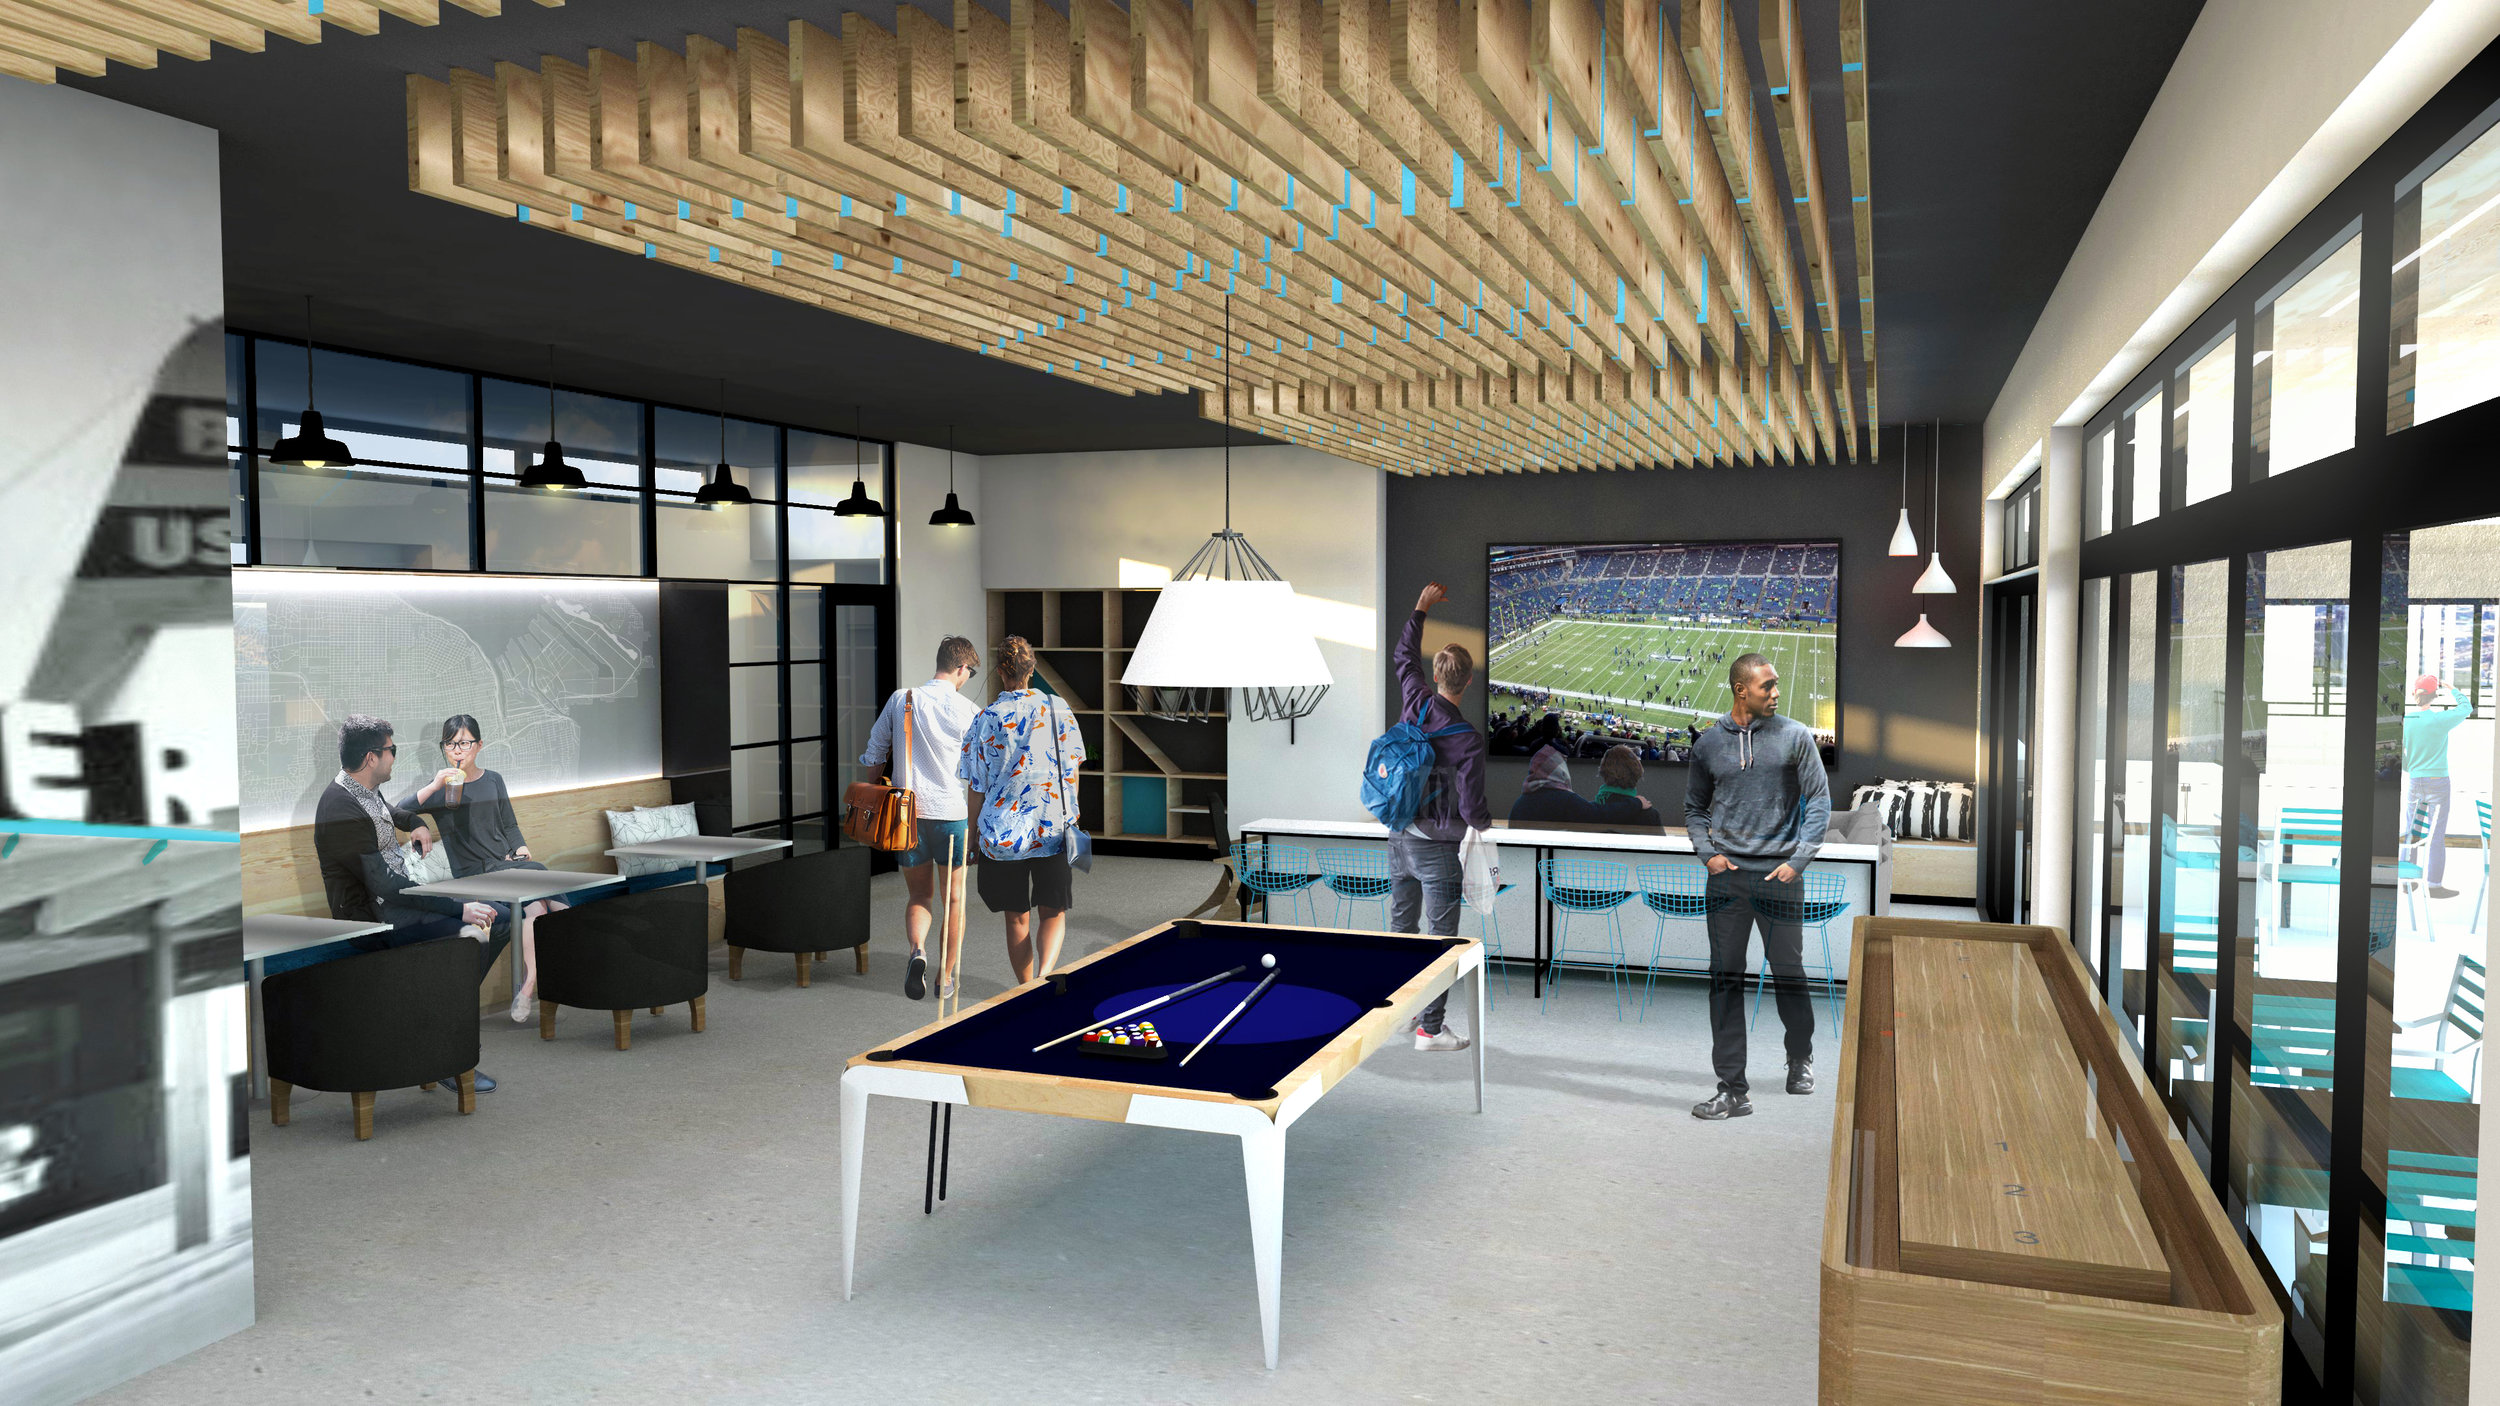 Work done for Ferguson Architecture - Resident Lounge  (Design by me and others - reclaimed wood ceiling design by me - rendering by others)